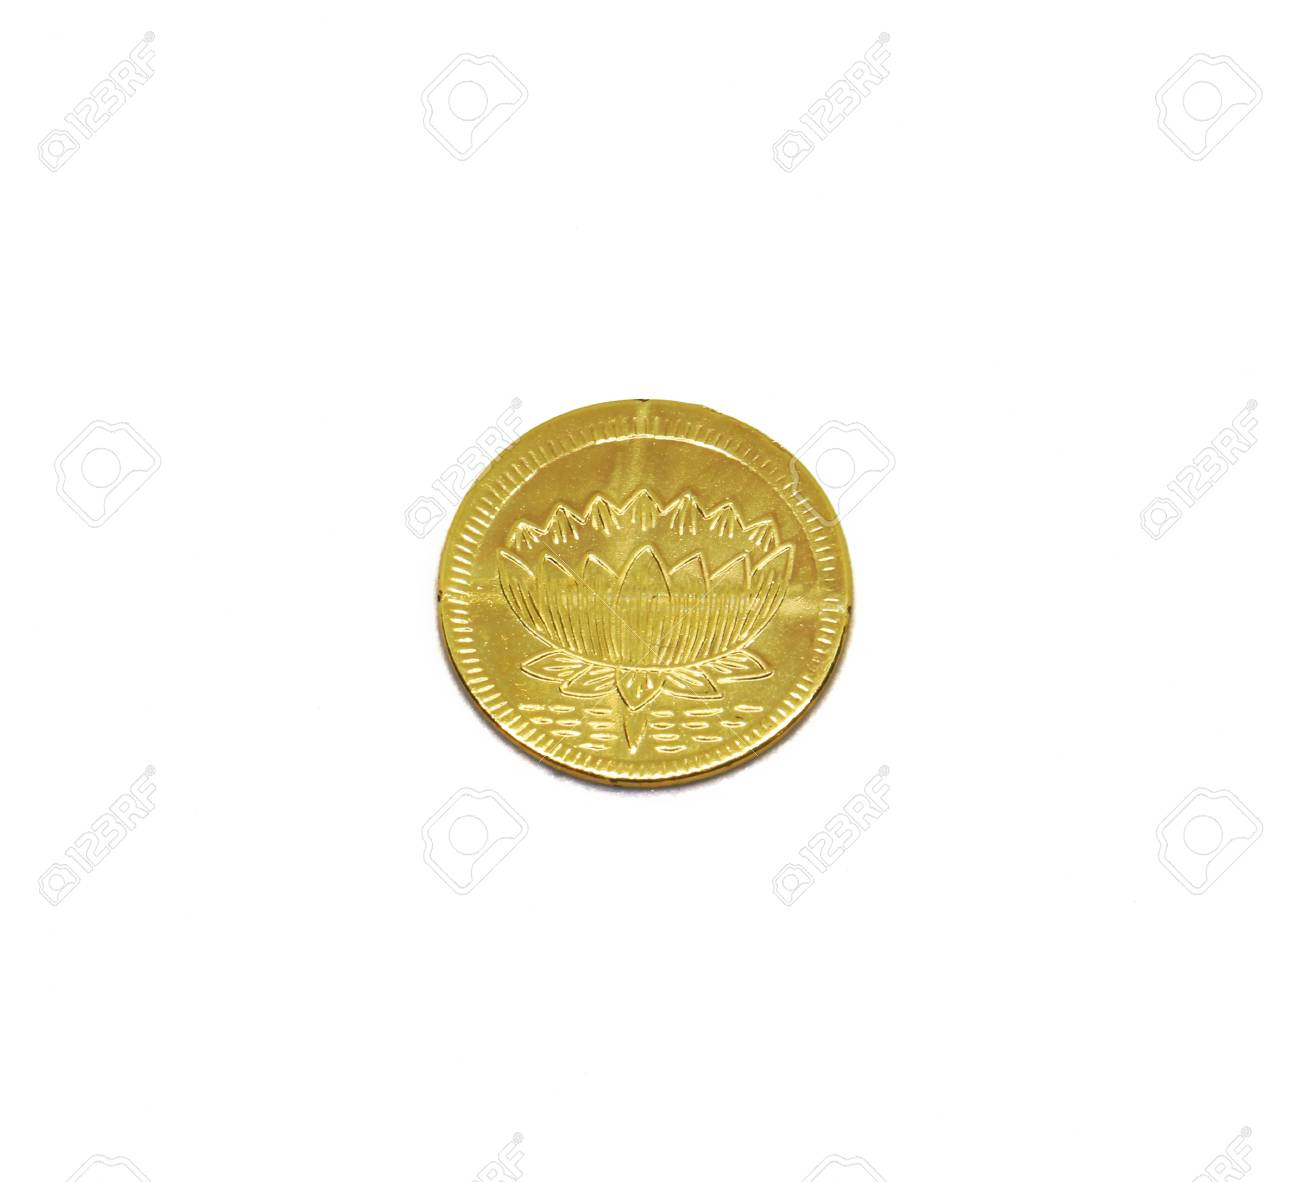 Lotus Flower Golden Coin Isolate On A White Background